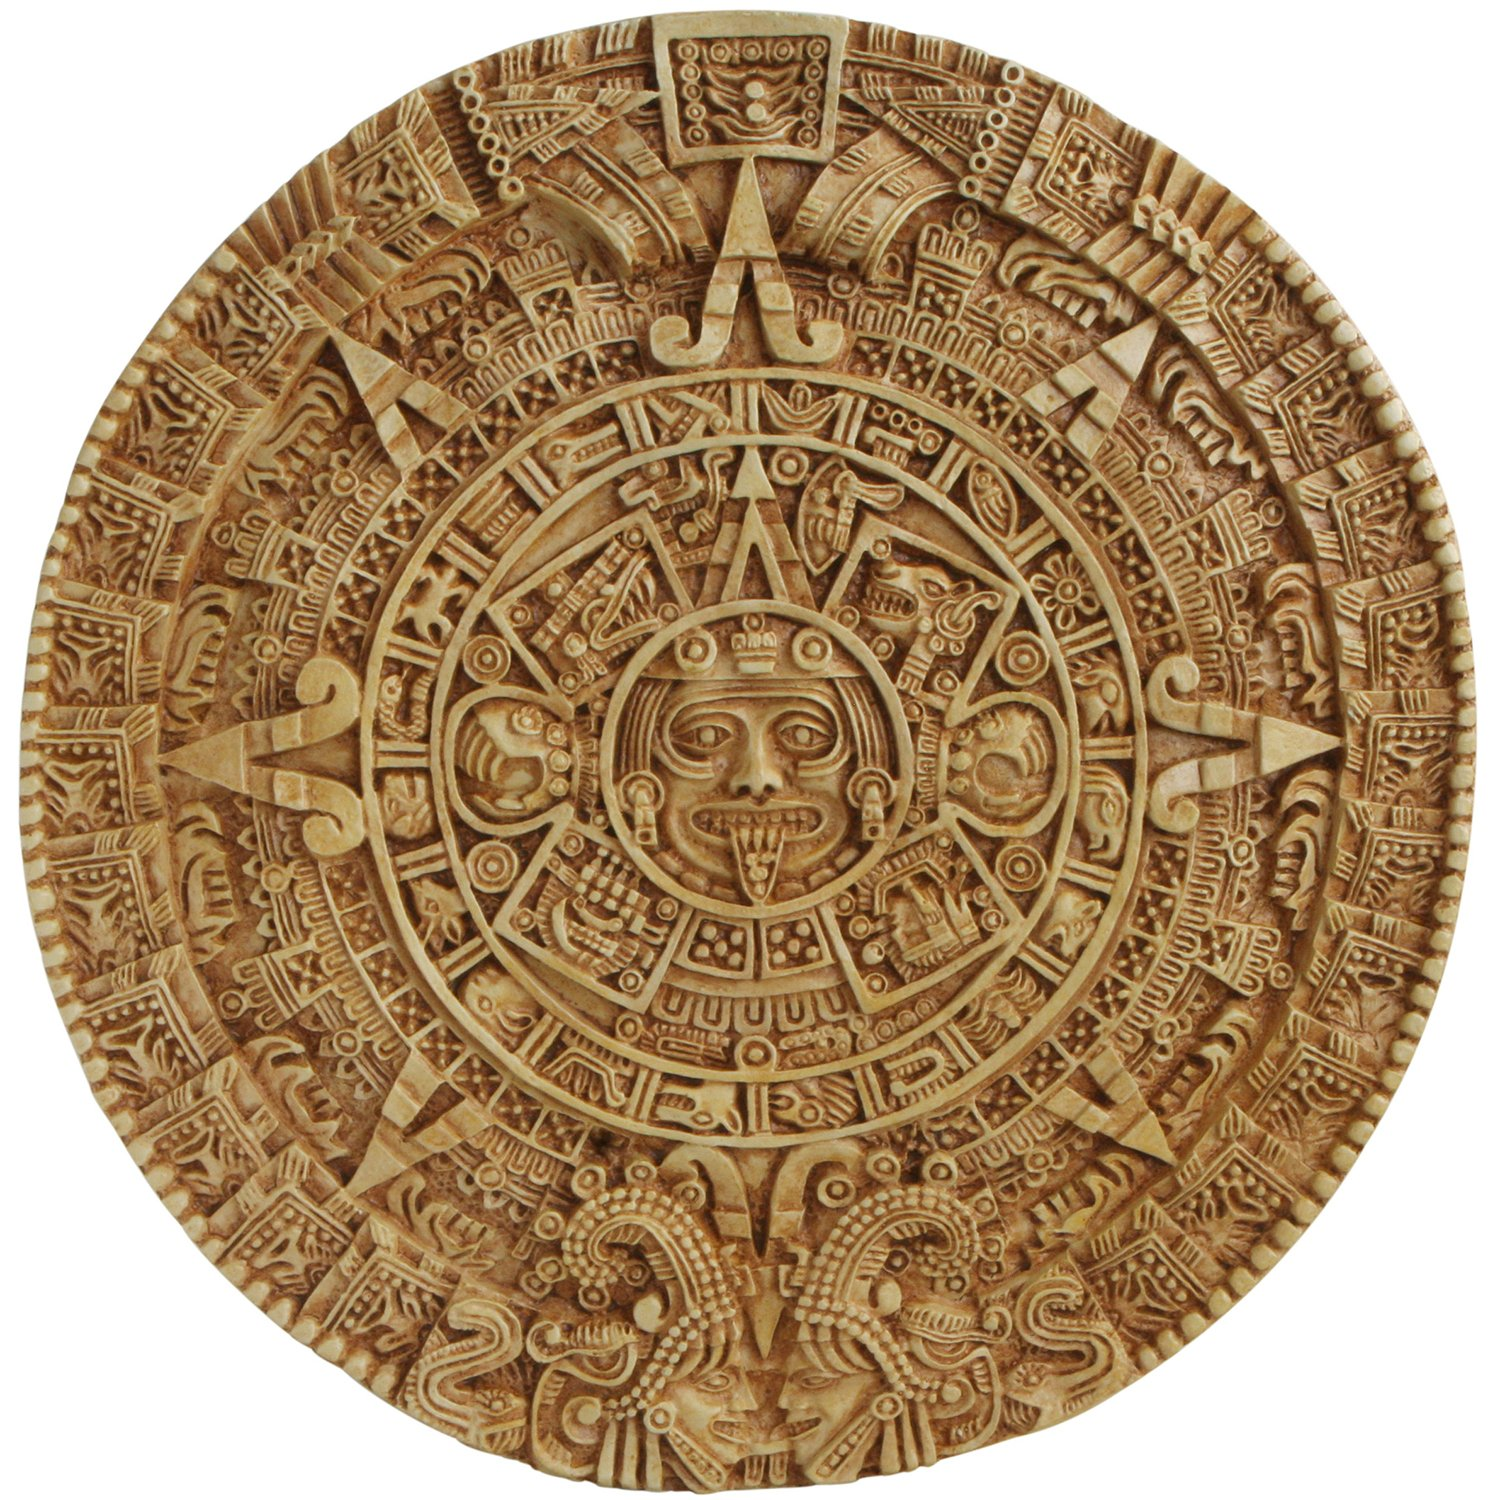 Culture Spot Aztec Solar Calendar Wall Art Relief with Stone Finish | Wall Hanging | wall sculpture | Indoor Placement | Ready to Hang | 17 Inches Diameter by Culture Spot